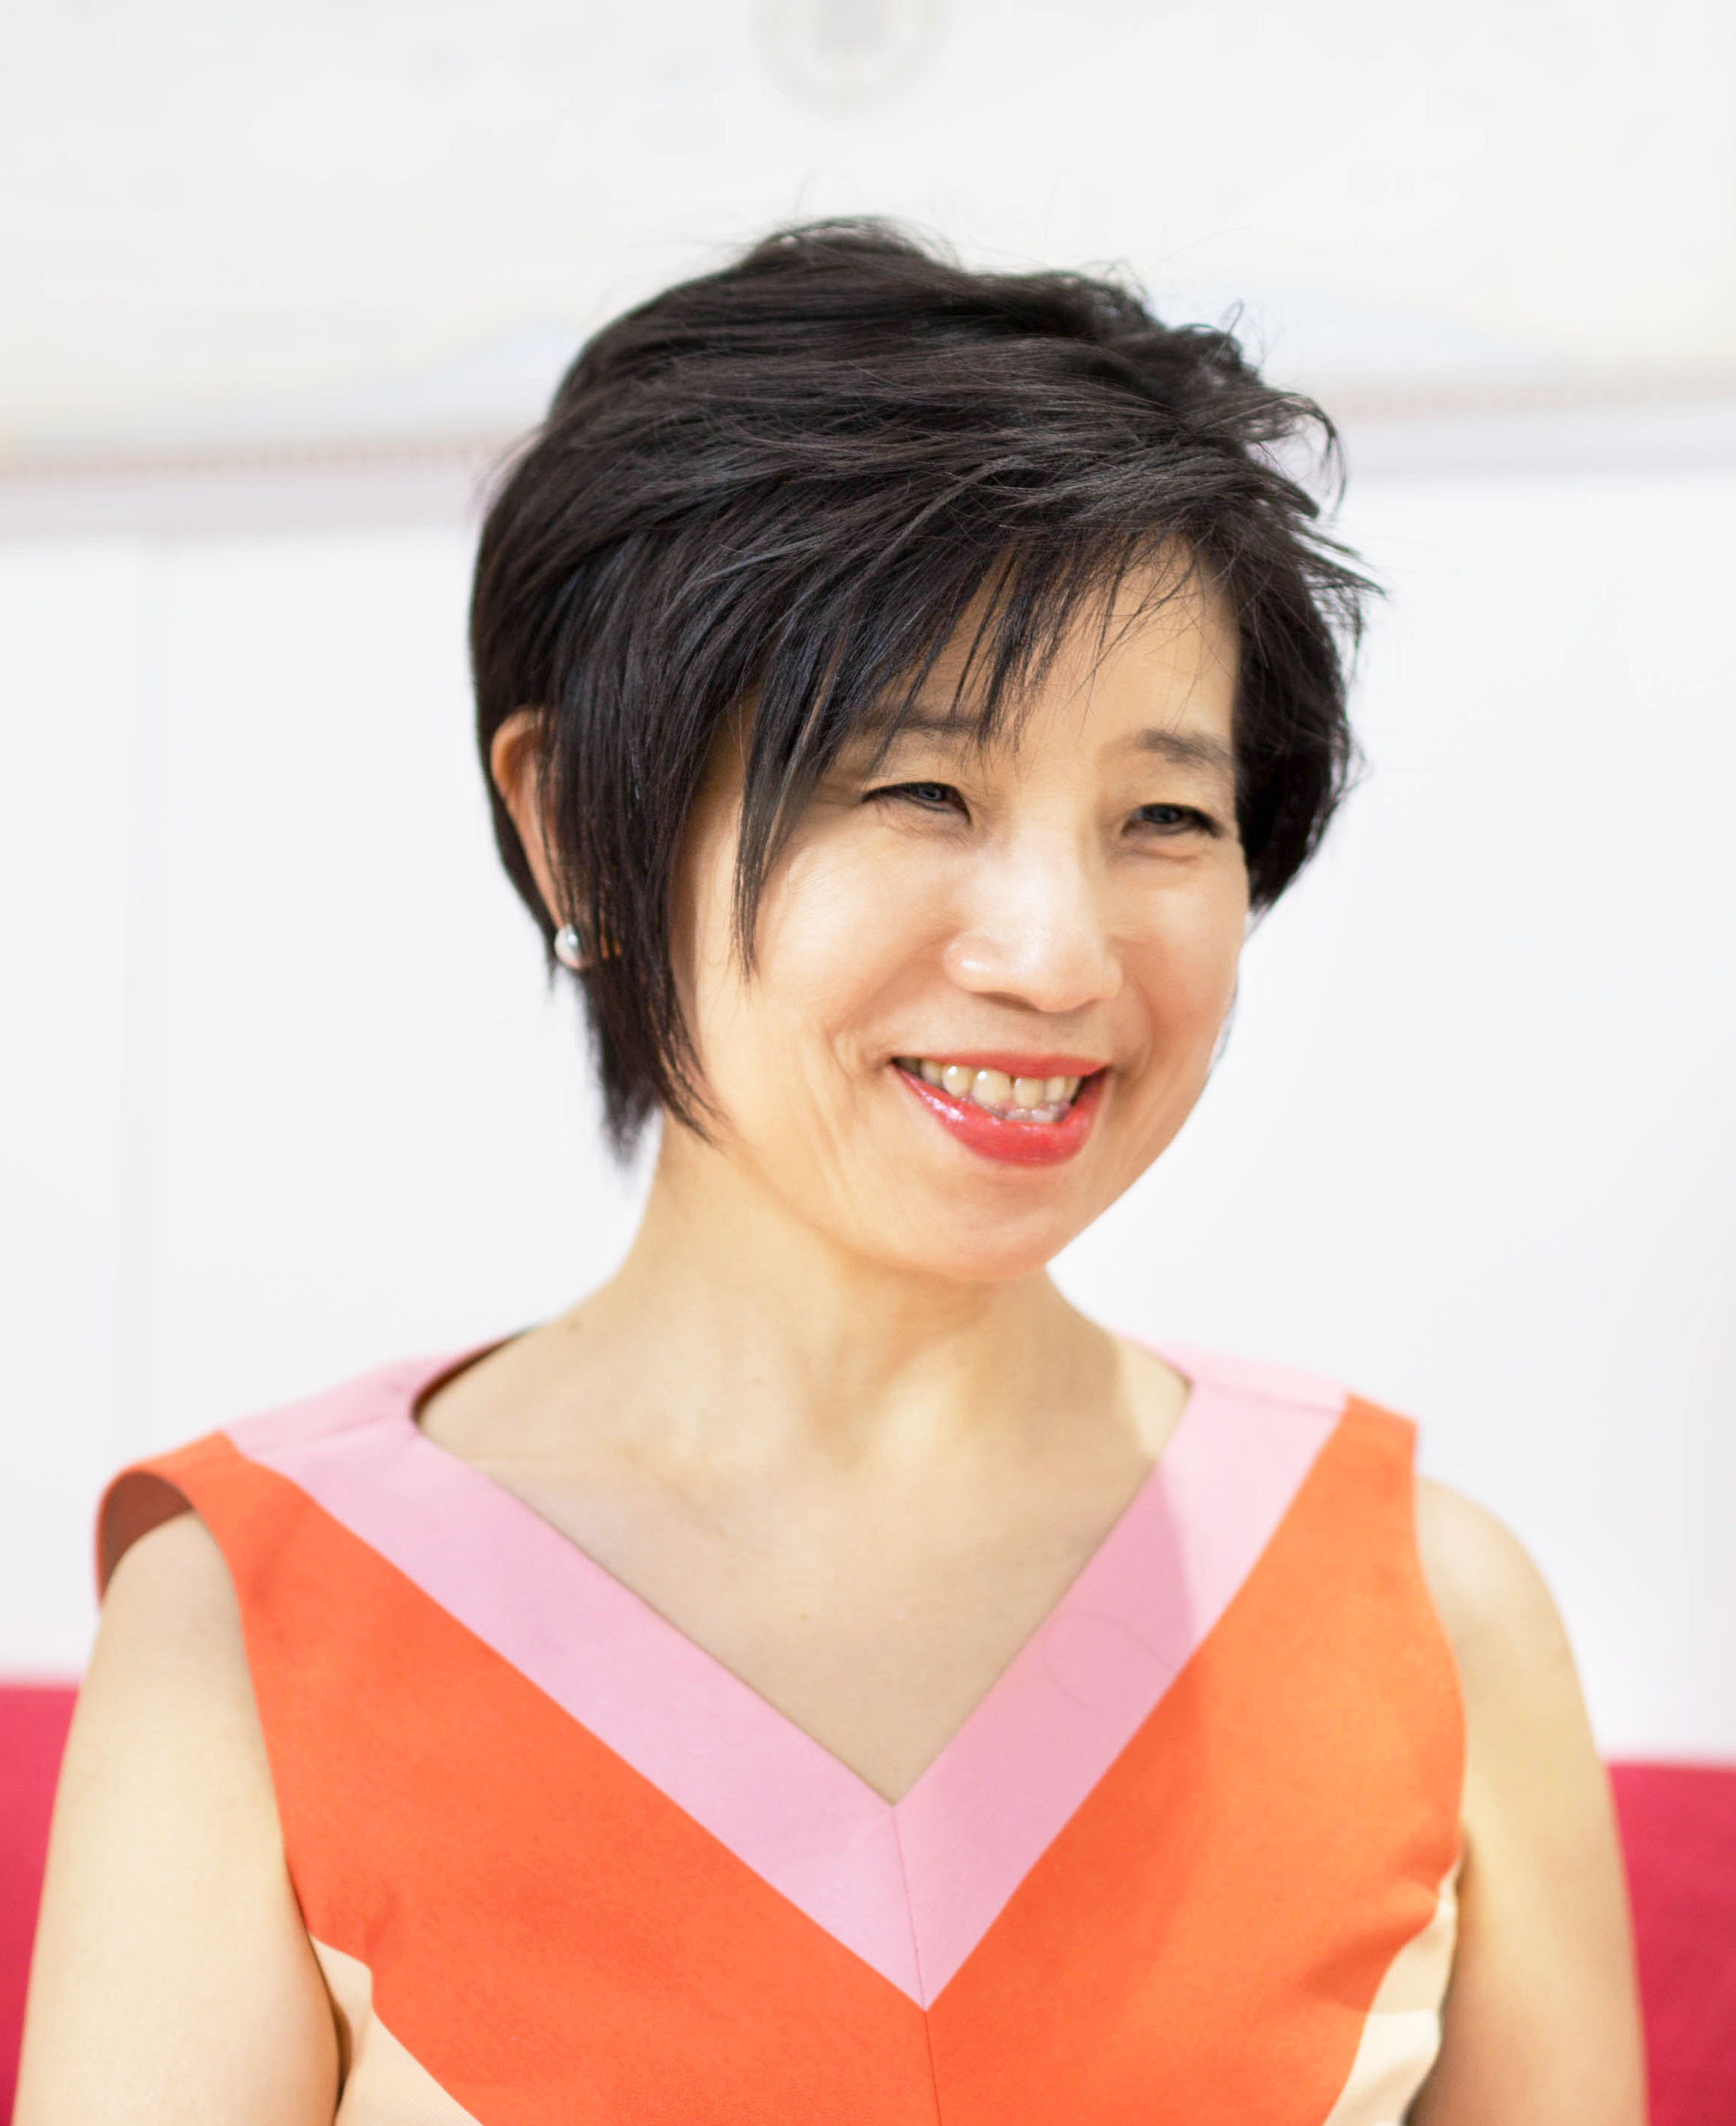 Professor Yuko Hasegawa Has Been Appointed As The Director Of The 21st Century Museum Of Contemporary Art, Kanazawa.